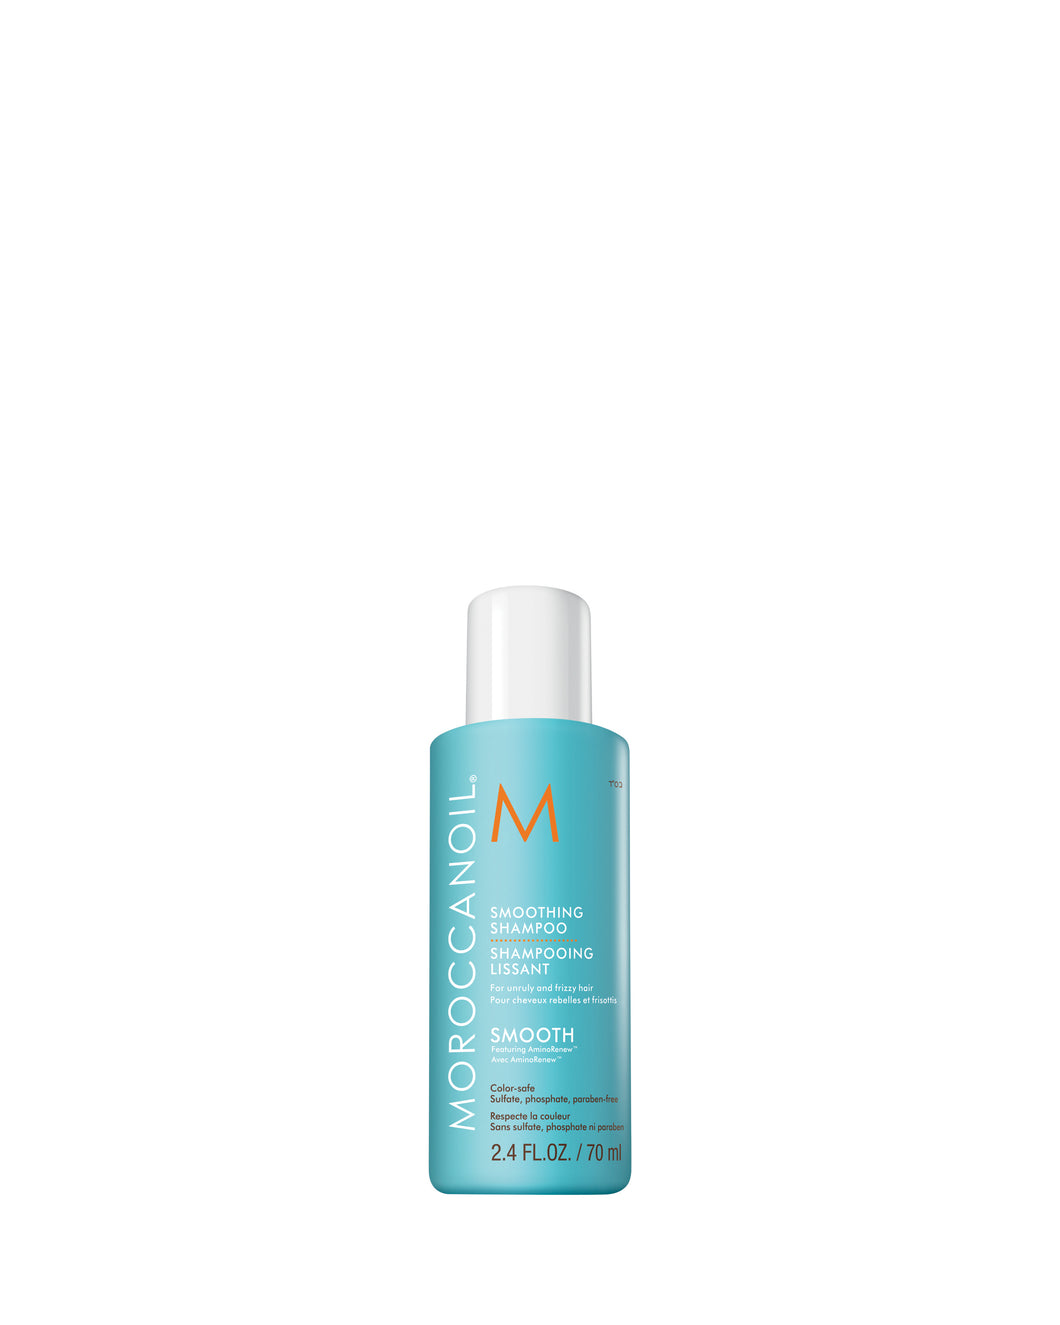 Shampoing lissant 70 mL